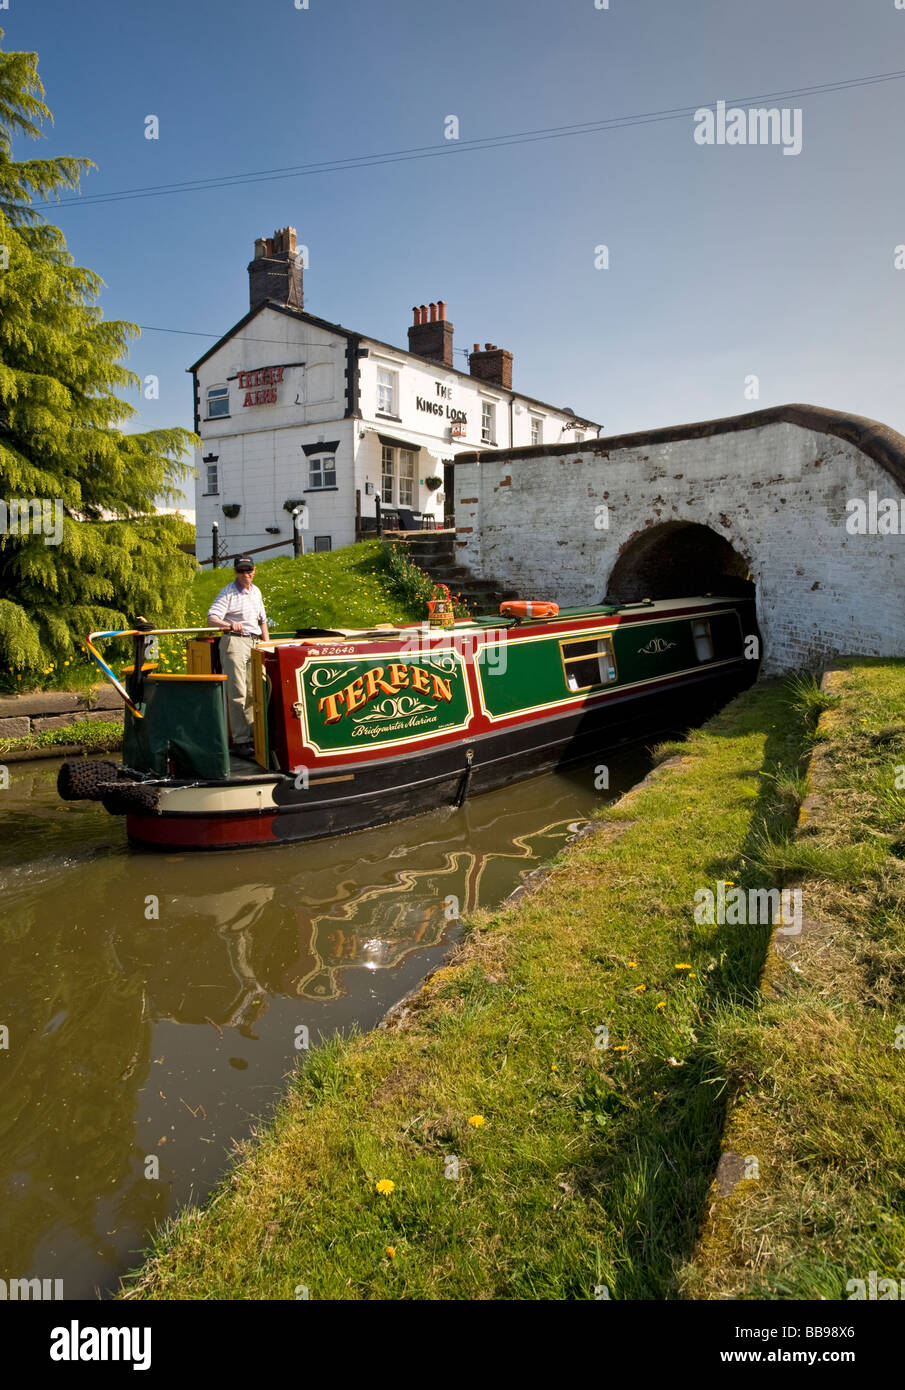 Narrowboat Entering Kings Lock, Shropshire Union Canal, Middlewich, Cheshire, England, UK - Stock Image